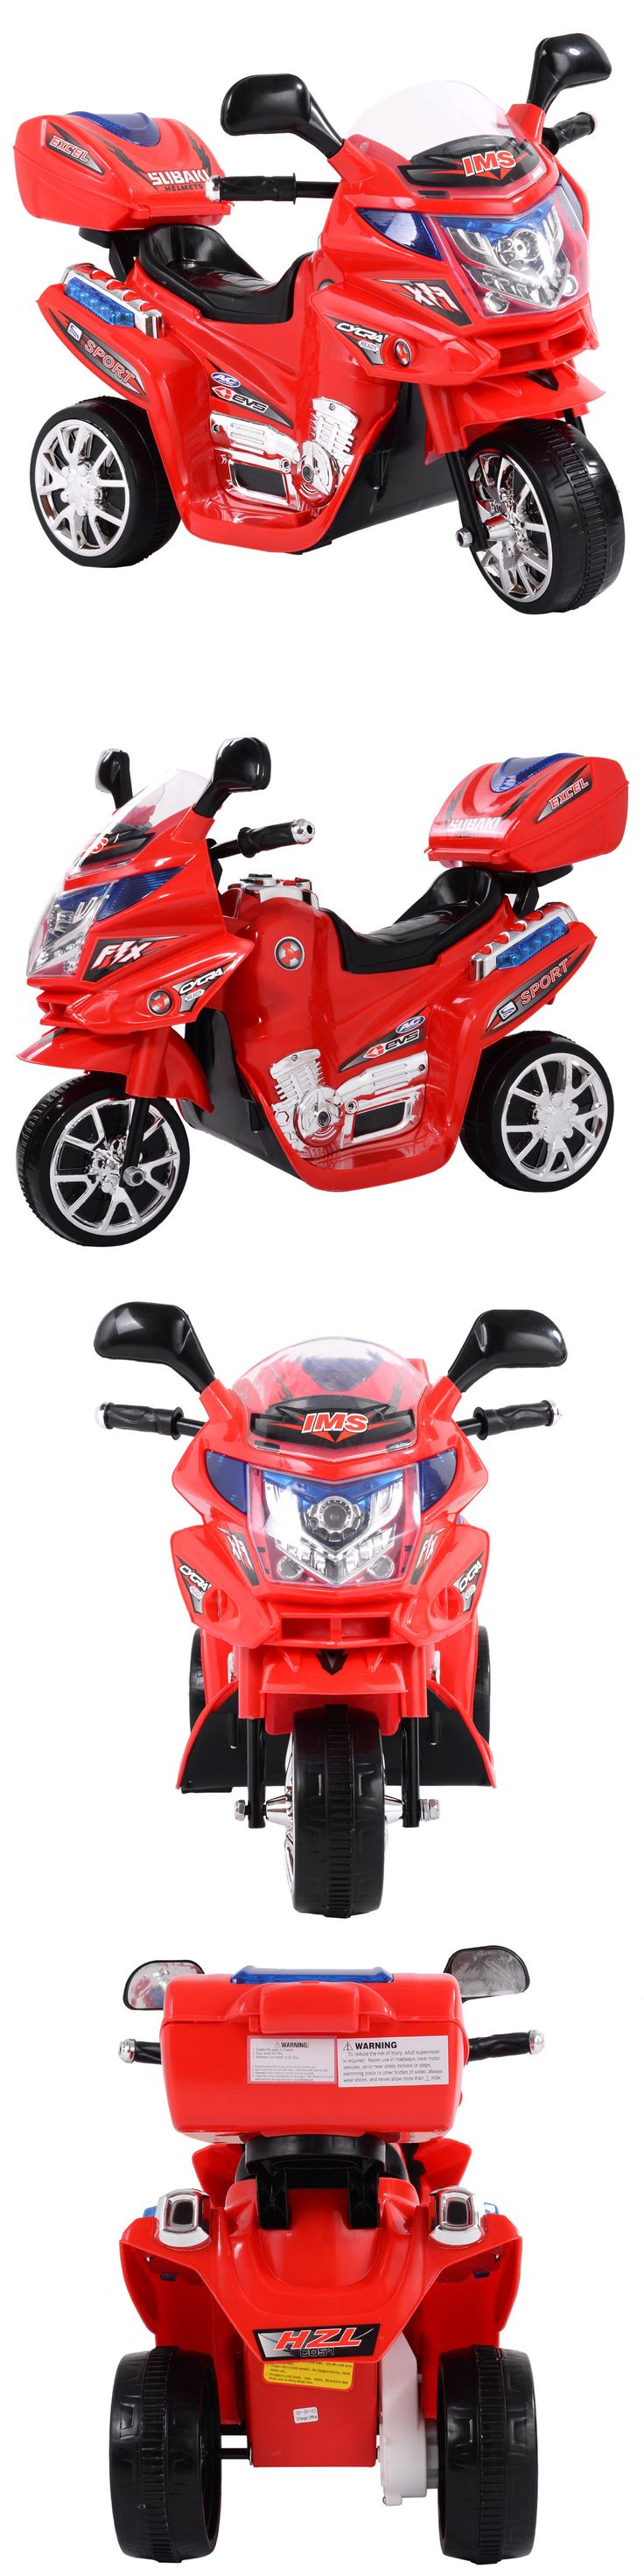 Ride On Toys and Accessories 145944: Kids 3 Wheel Electric Motorcycle 6V Bike Battery Powered Ride On Toy New Red -> BUY IT NOW ONLY: $41.99 on eBay!